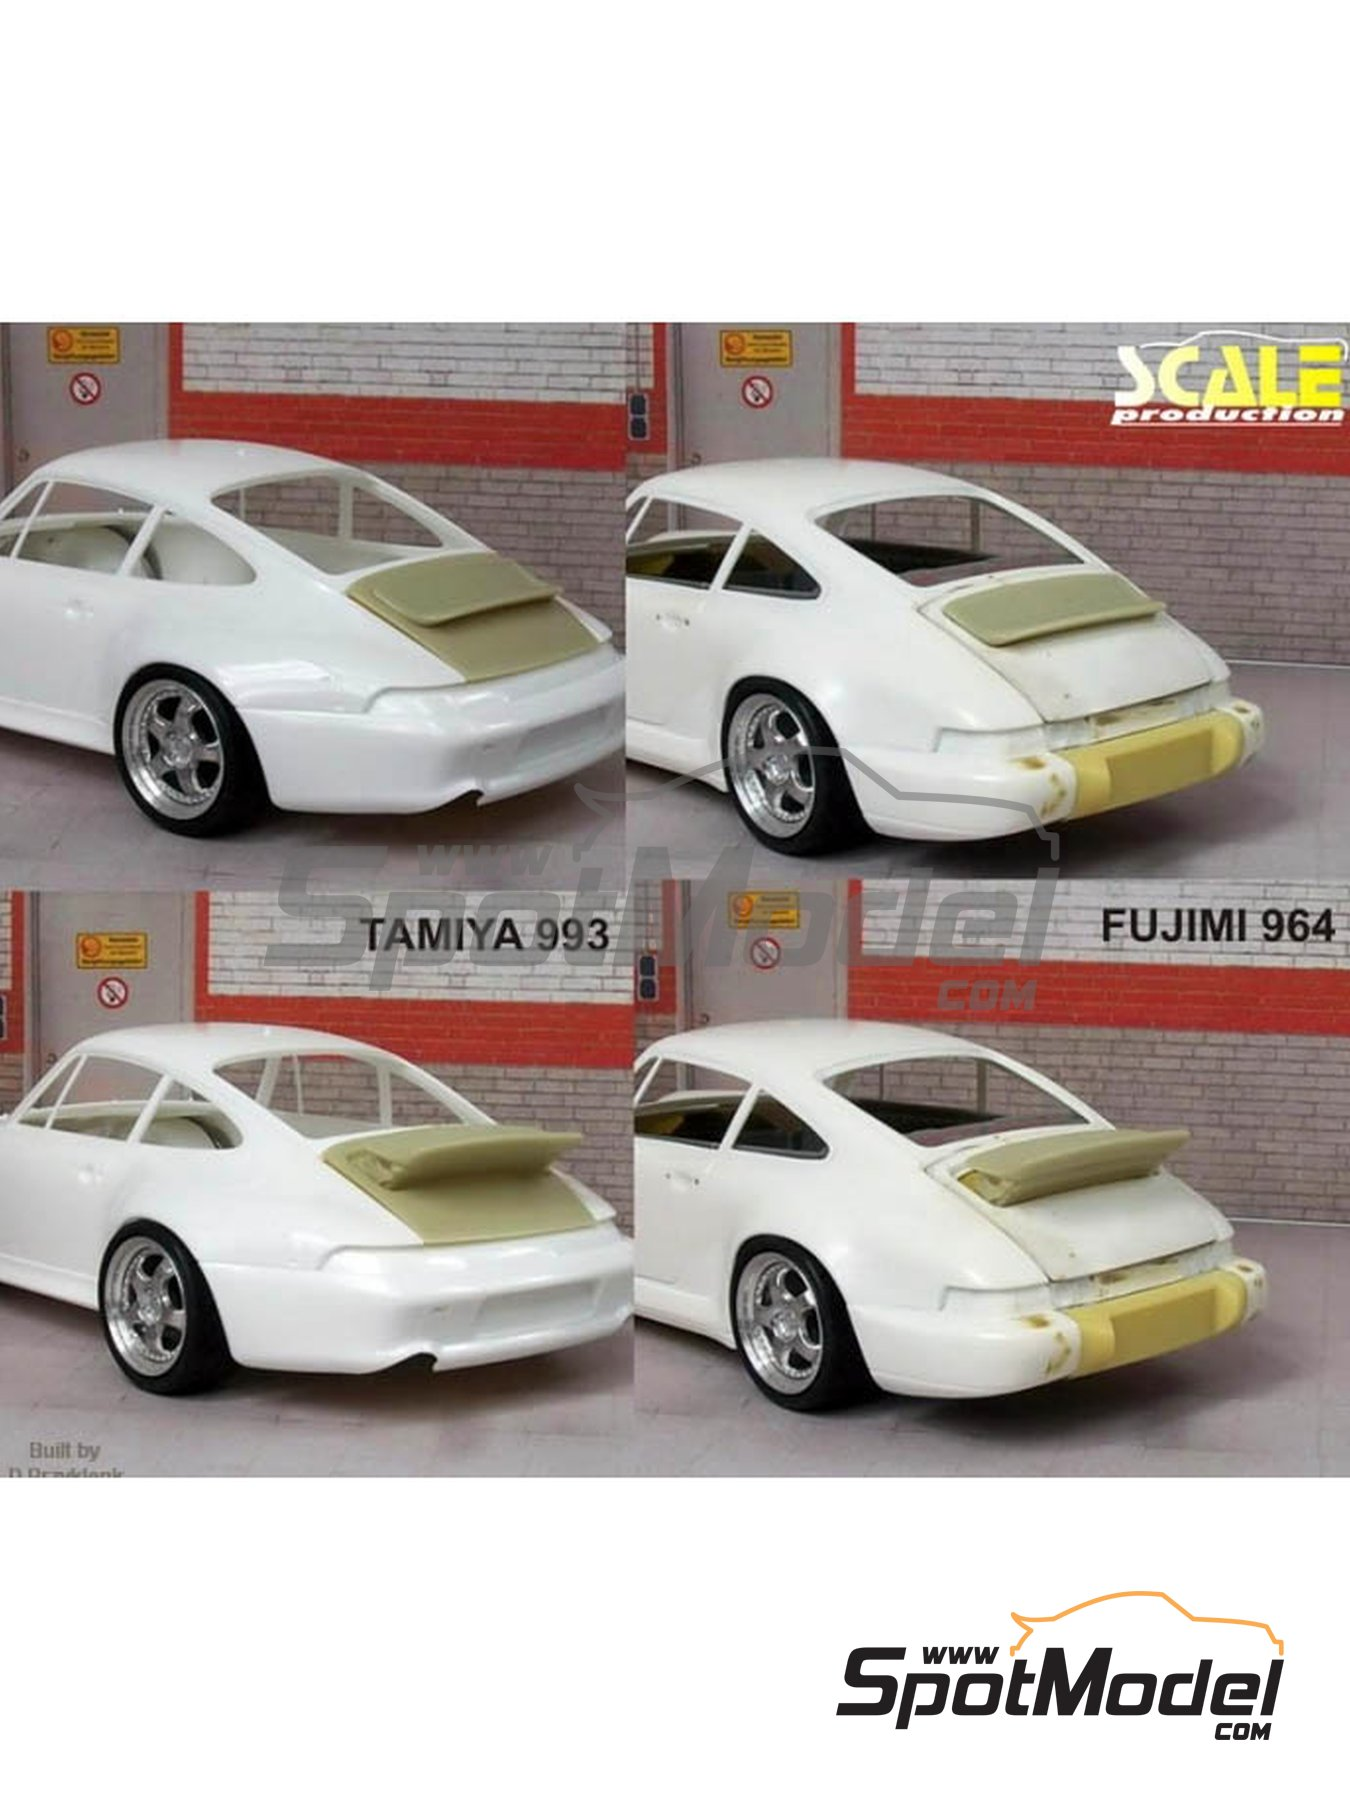 Porsche 964 993 Singer style spoiler | Transkit in 1/24 scale manufactured by Scale Production (ref.SP24259) image